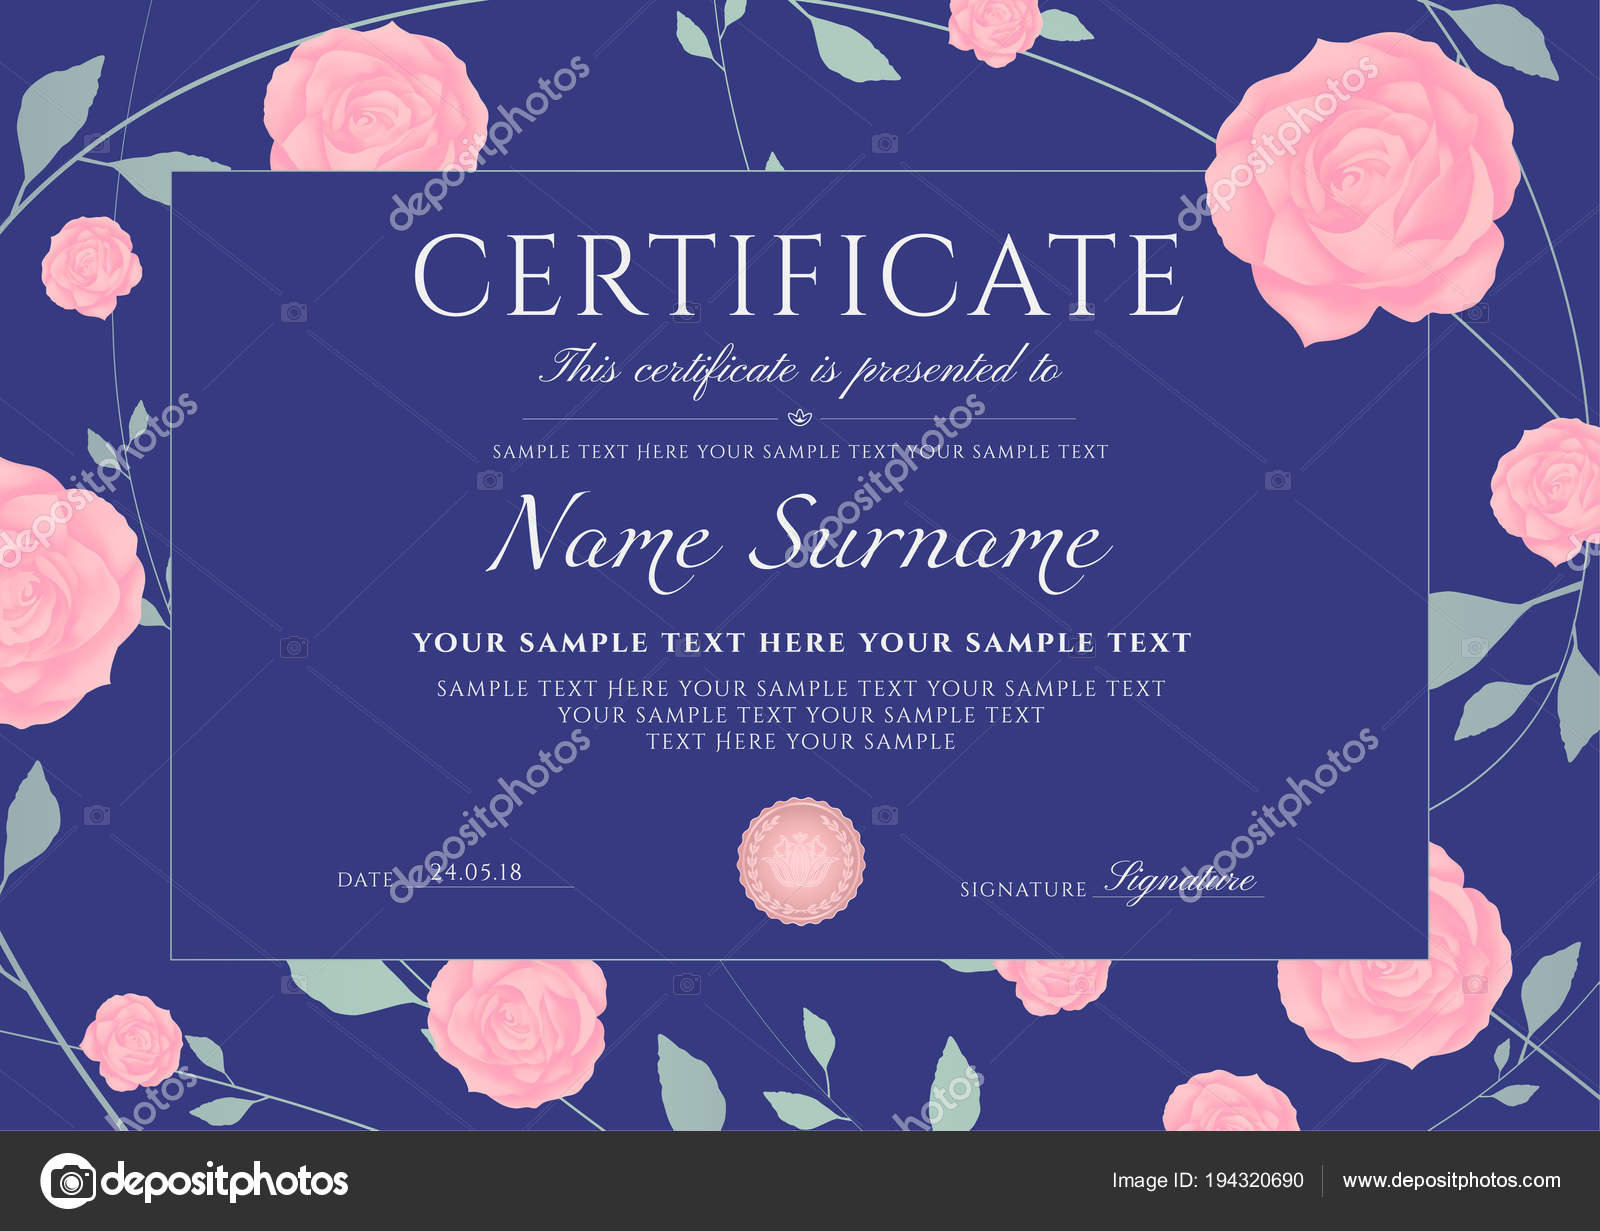 Certificate Completion Template Flowers Blue Roses Green Floral Pattern  Frame — Stock Vector